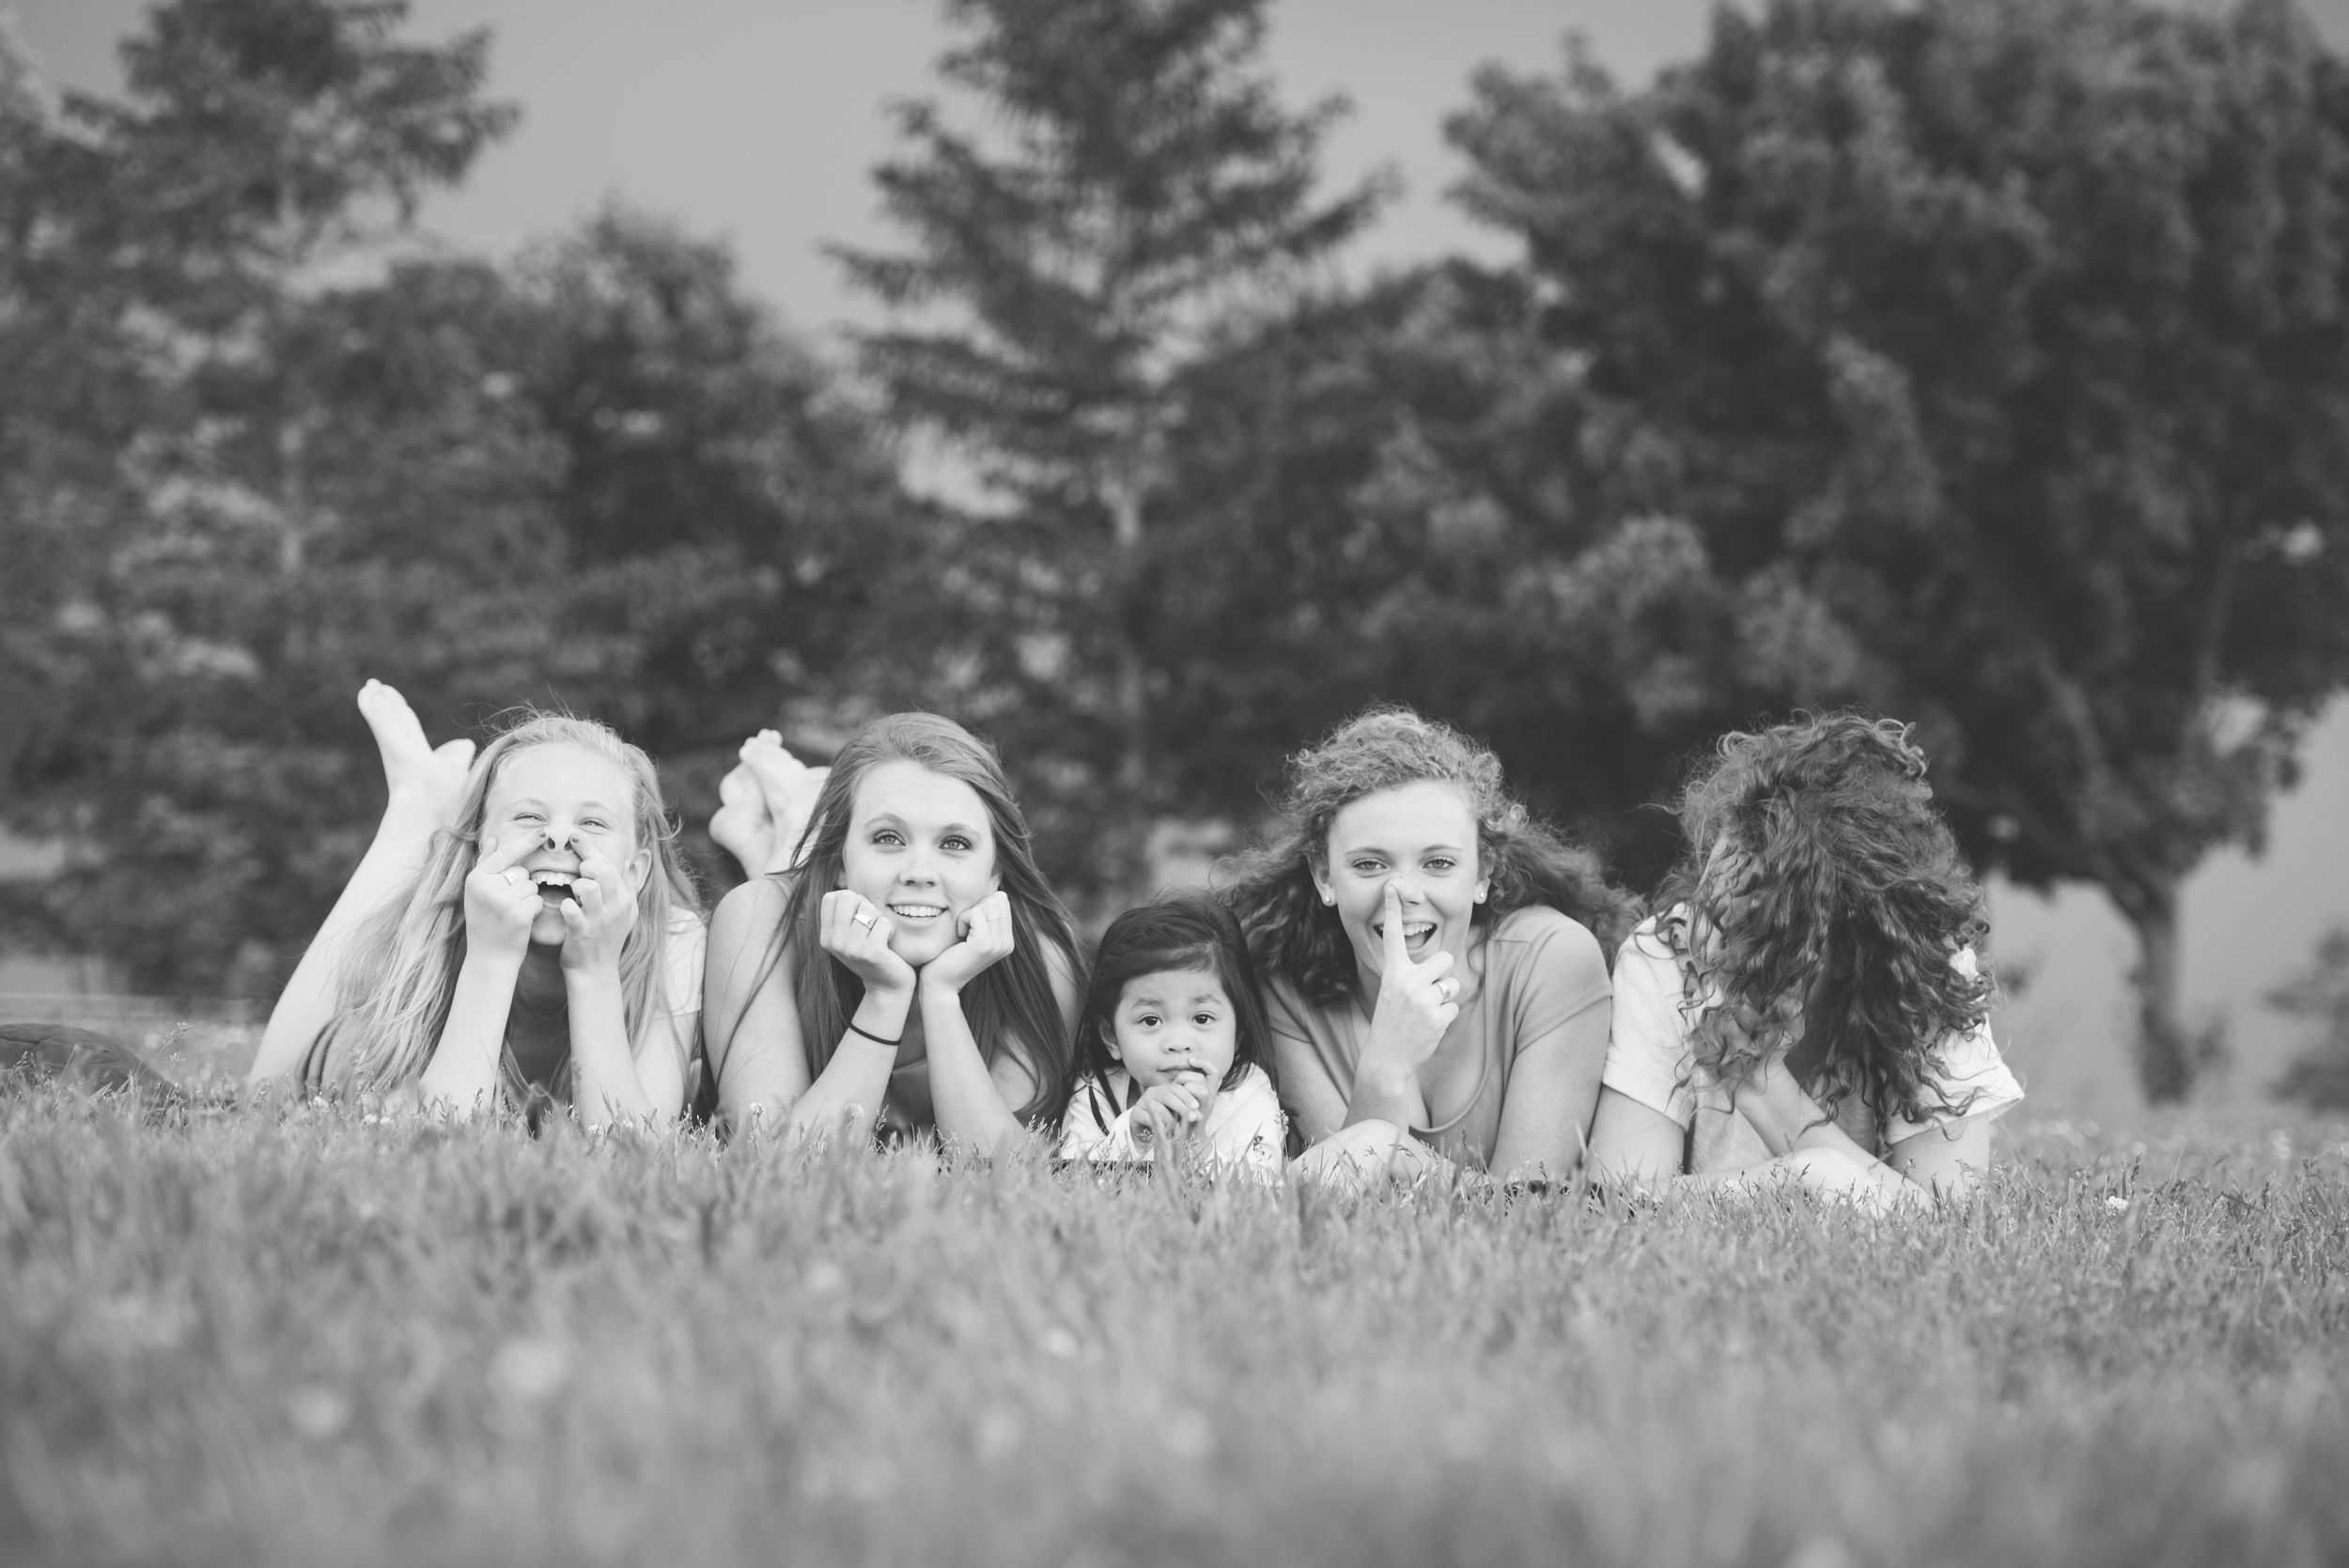 Vanderhorst Family Shoot49.jpg